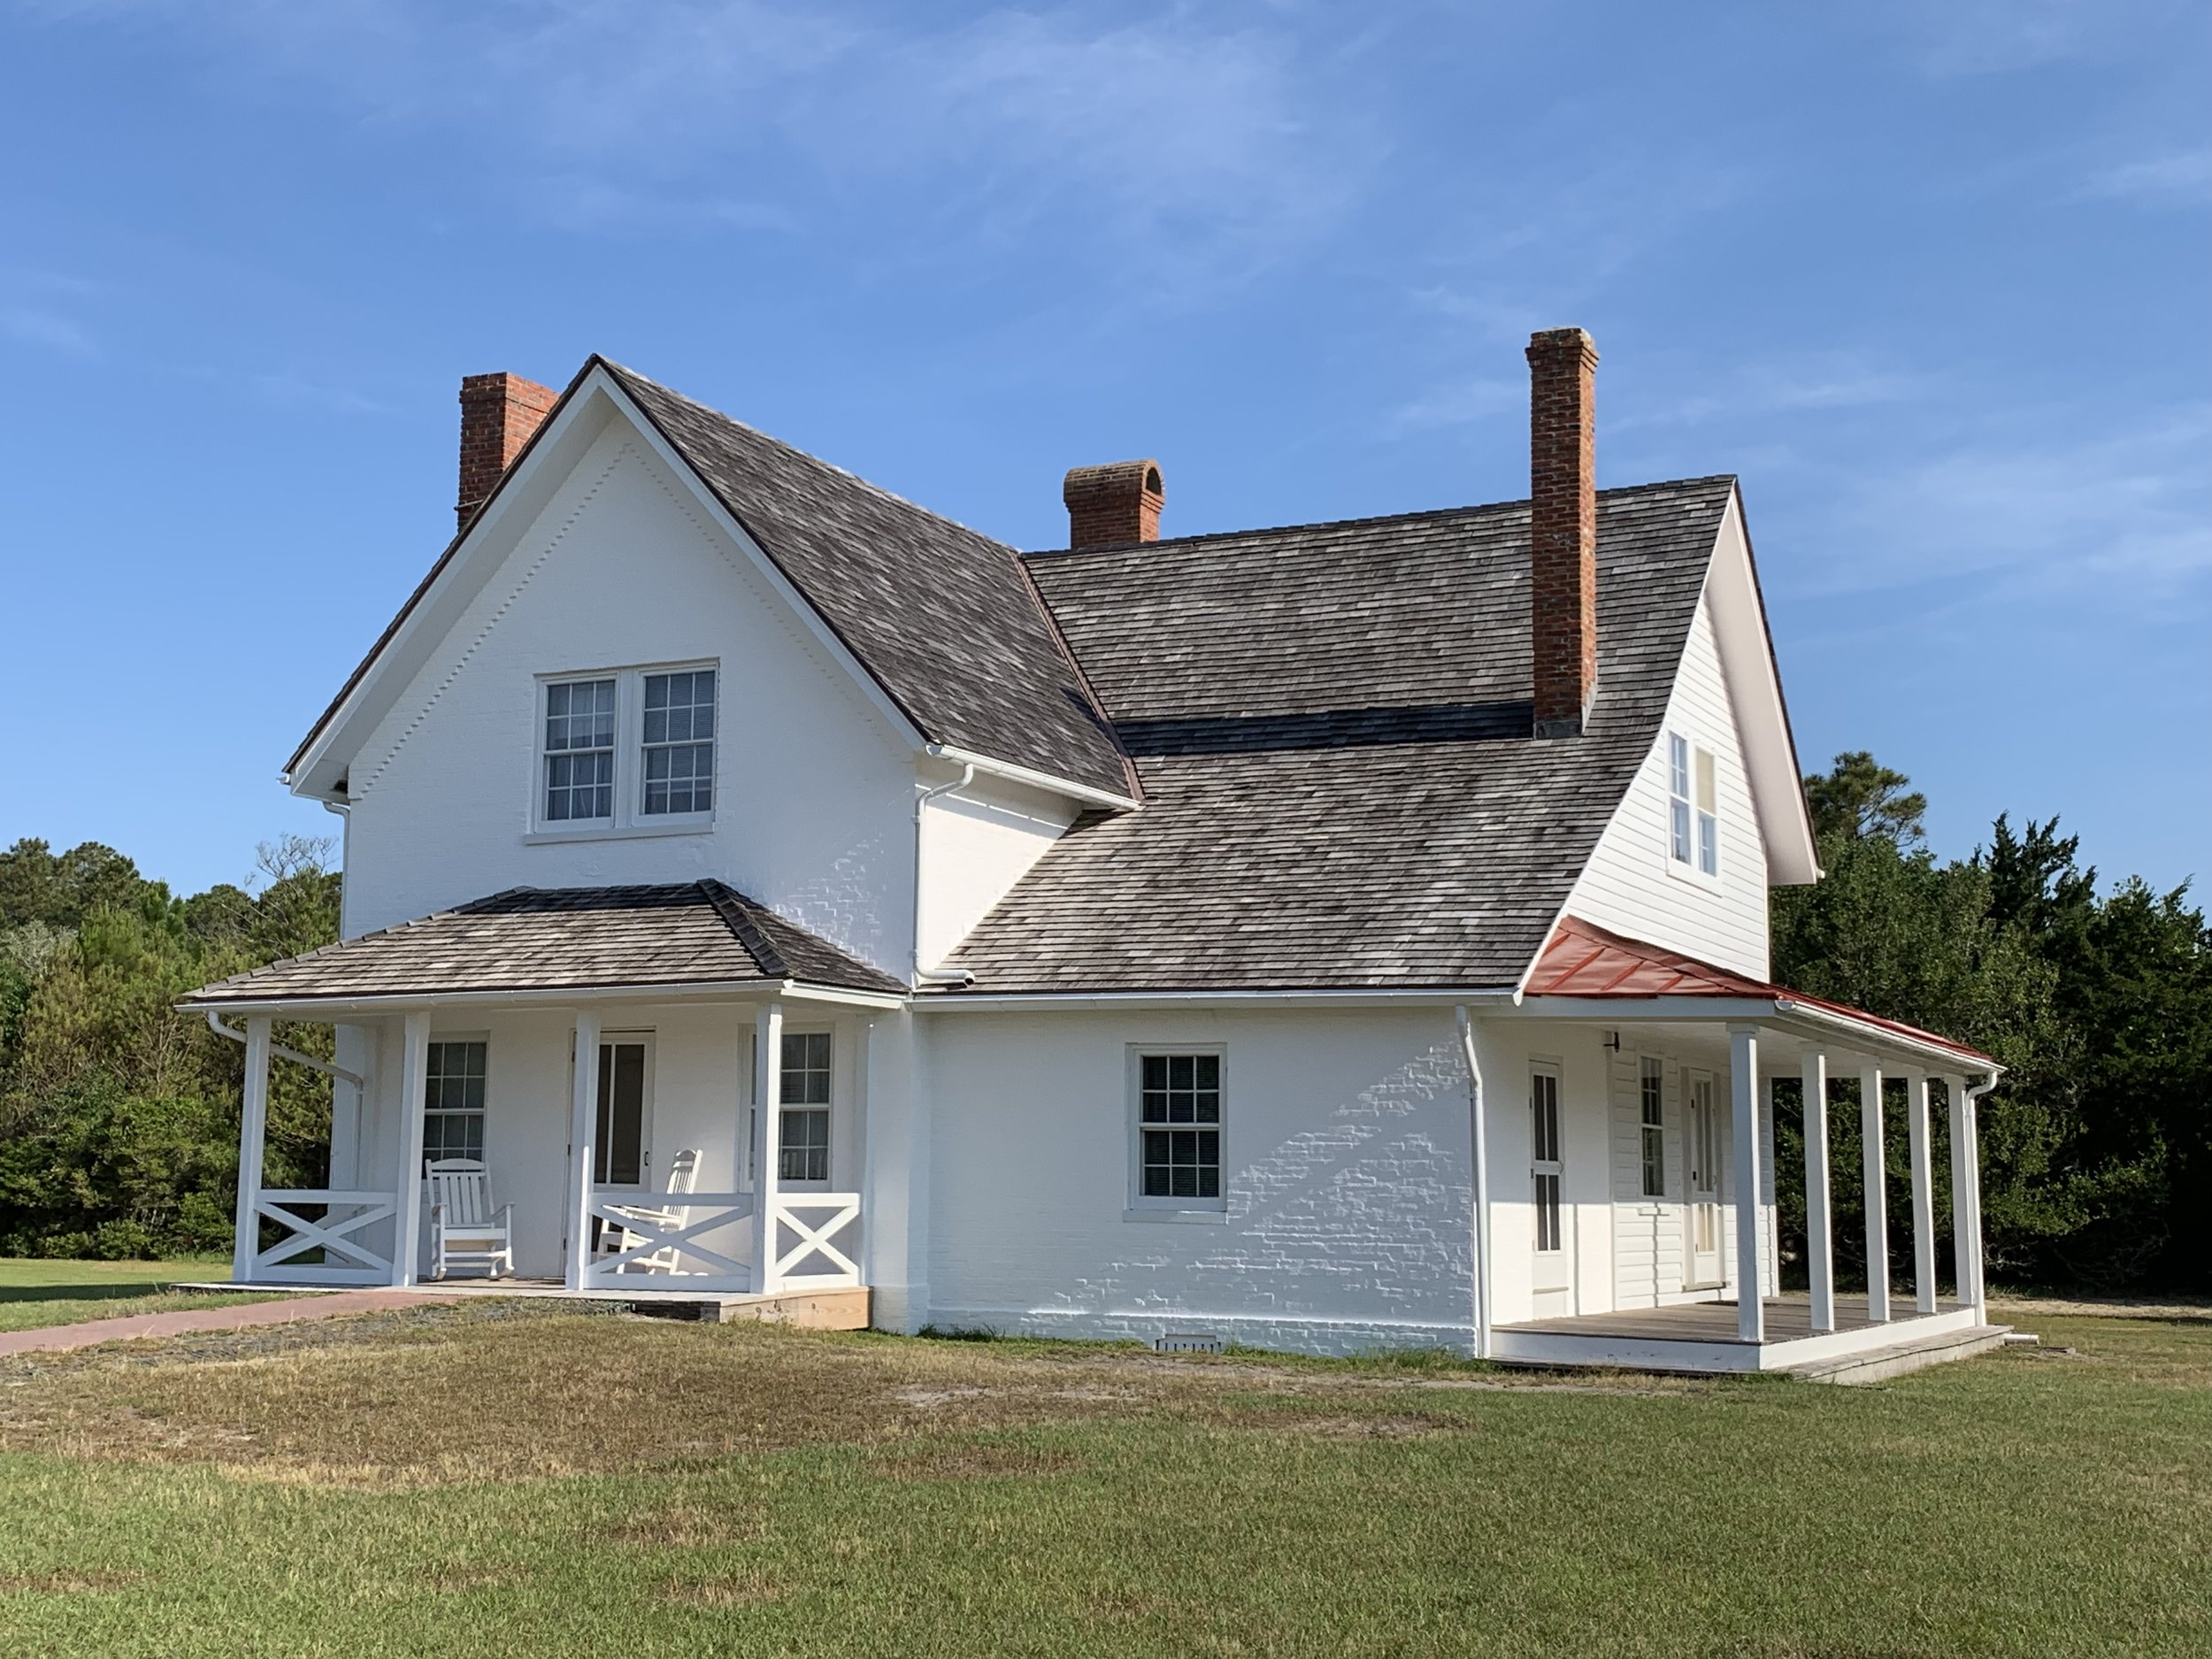 Cape Hatteras Principal Lighthouse Keeper's House - BEECK Mineral Paints - Renosil Coarse and Fine